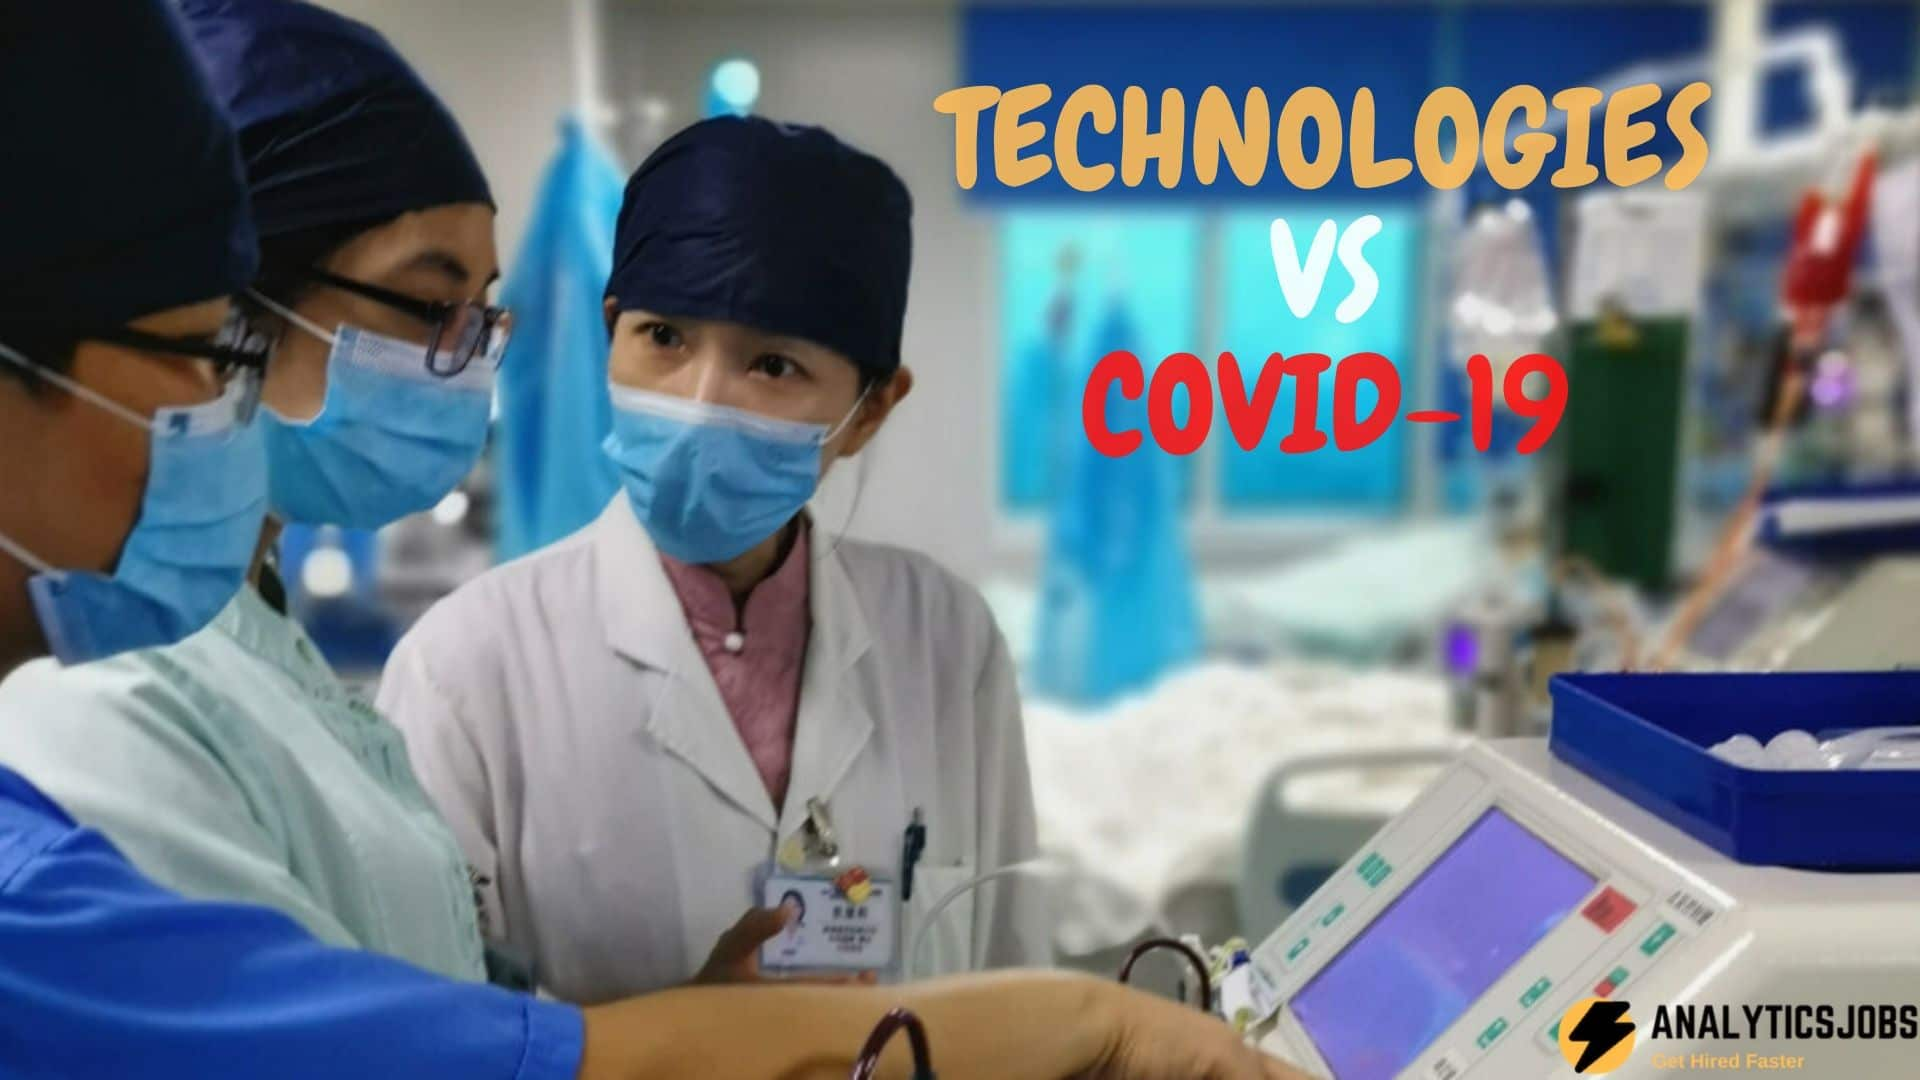 List of Technologies helping Mankind grapple against COVID-19